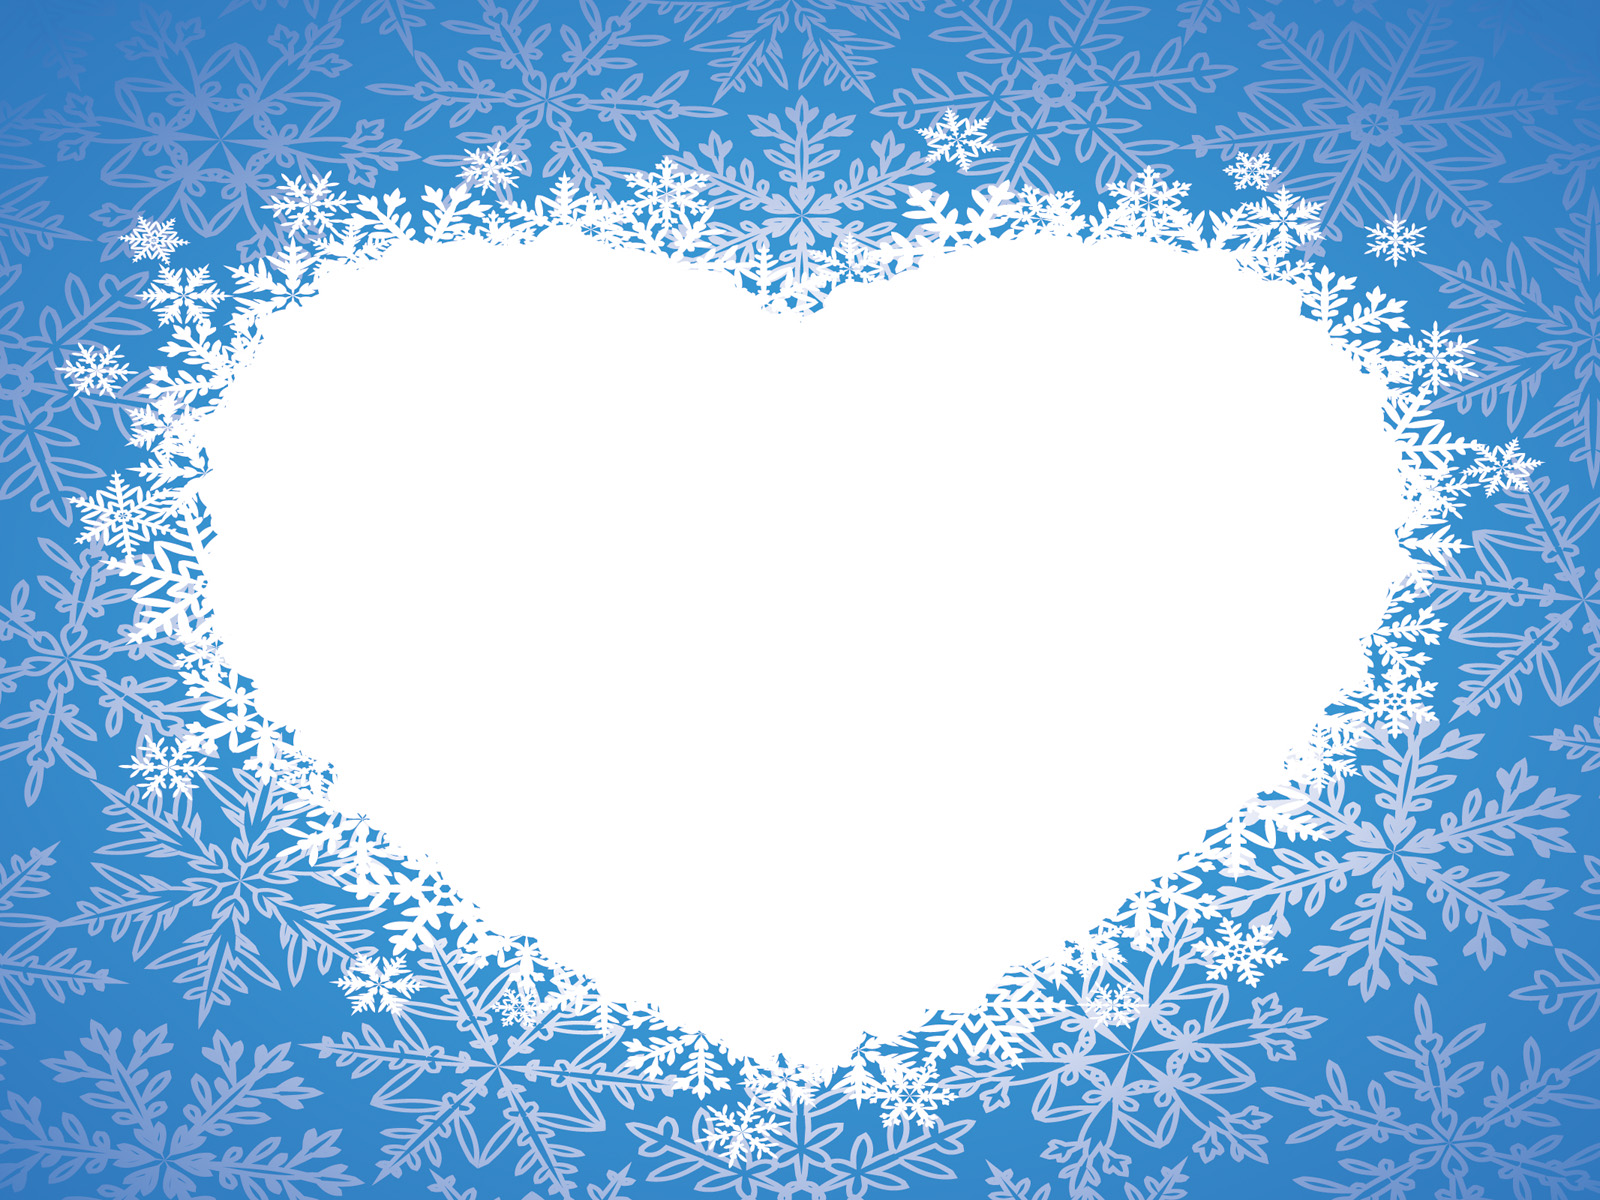 Love Winter Heart PPT Background